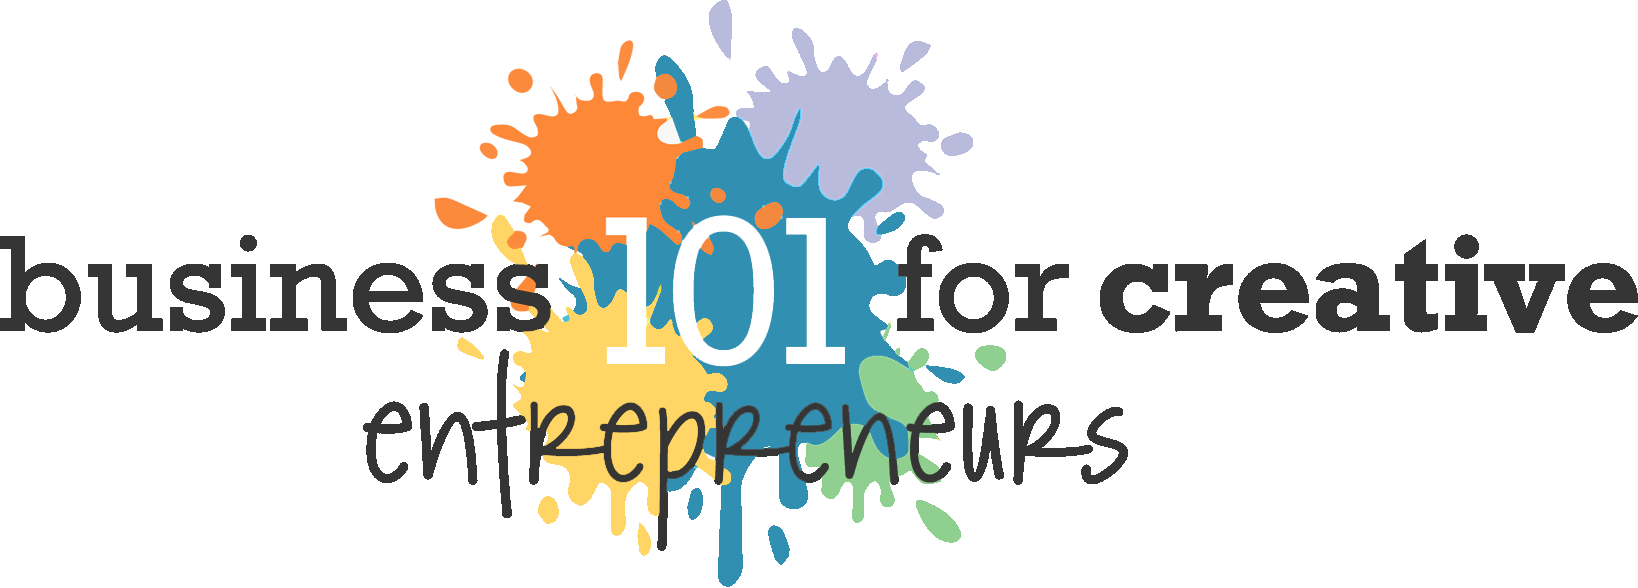 Business 101 for Creative Entrepreneurs